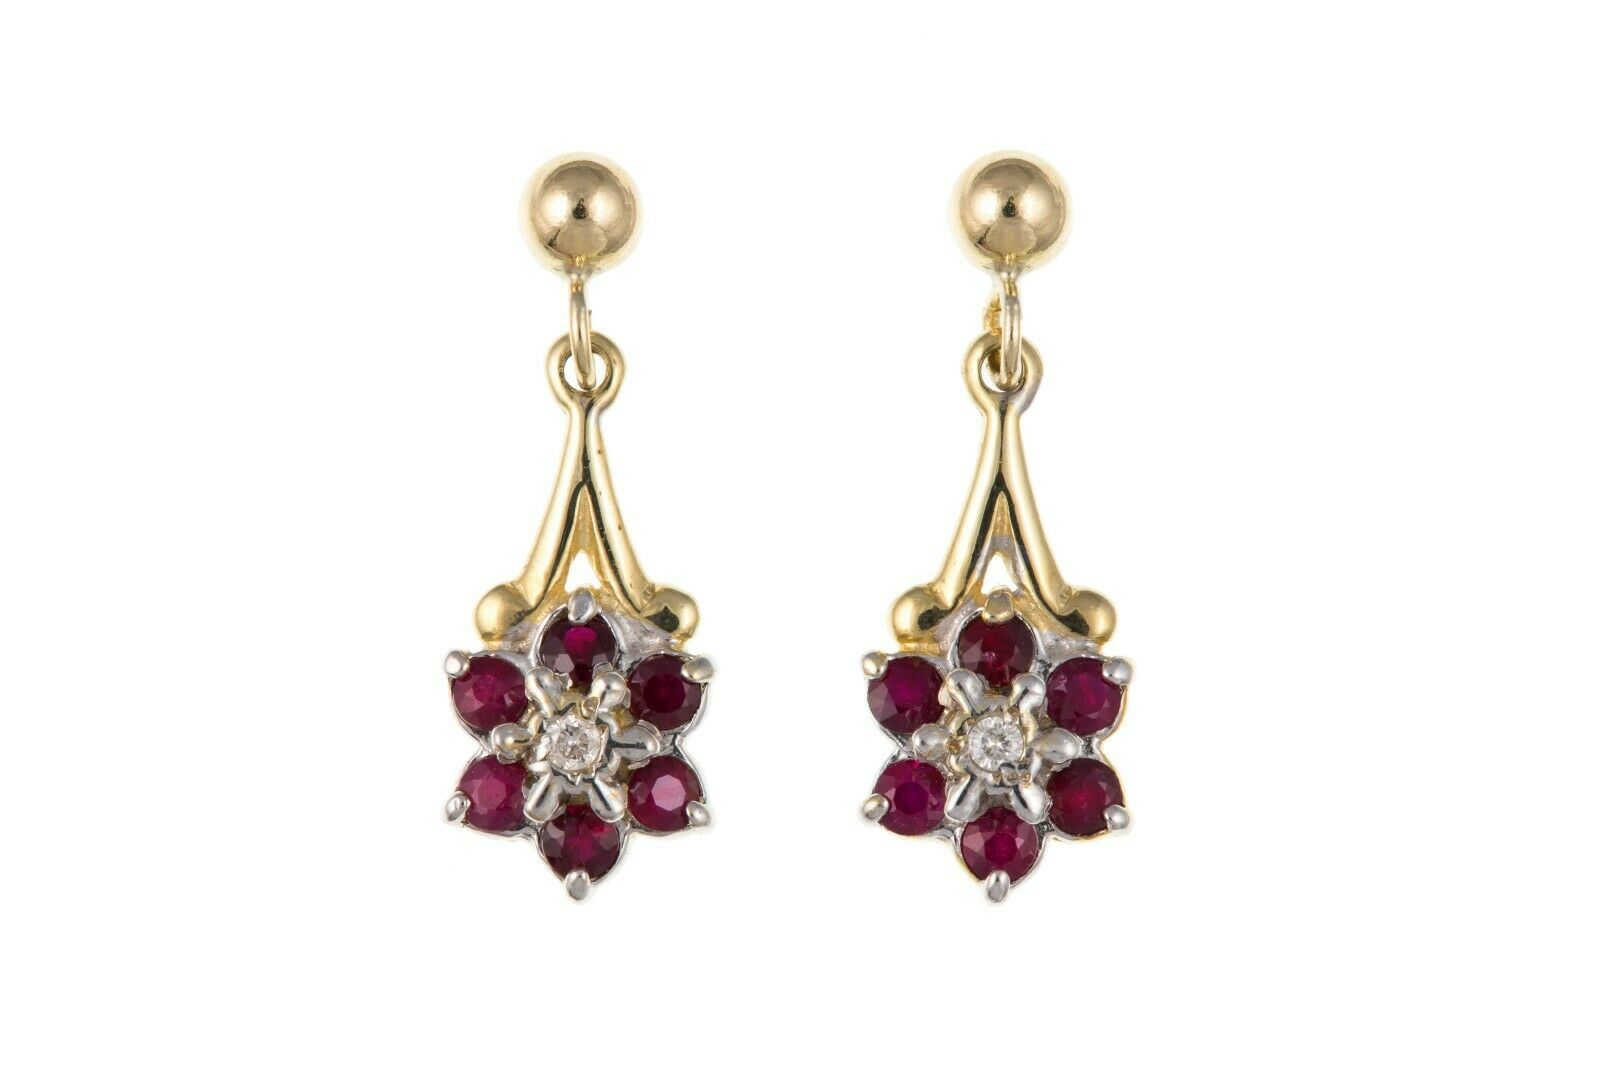 Ruby and Diamond Earrings Yellow gold Drop Drops Cluster Hallmarked Real Stones